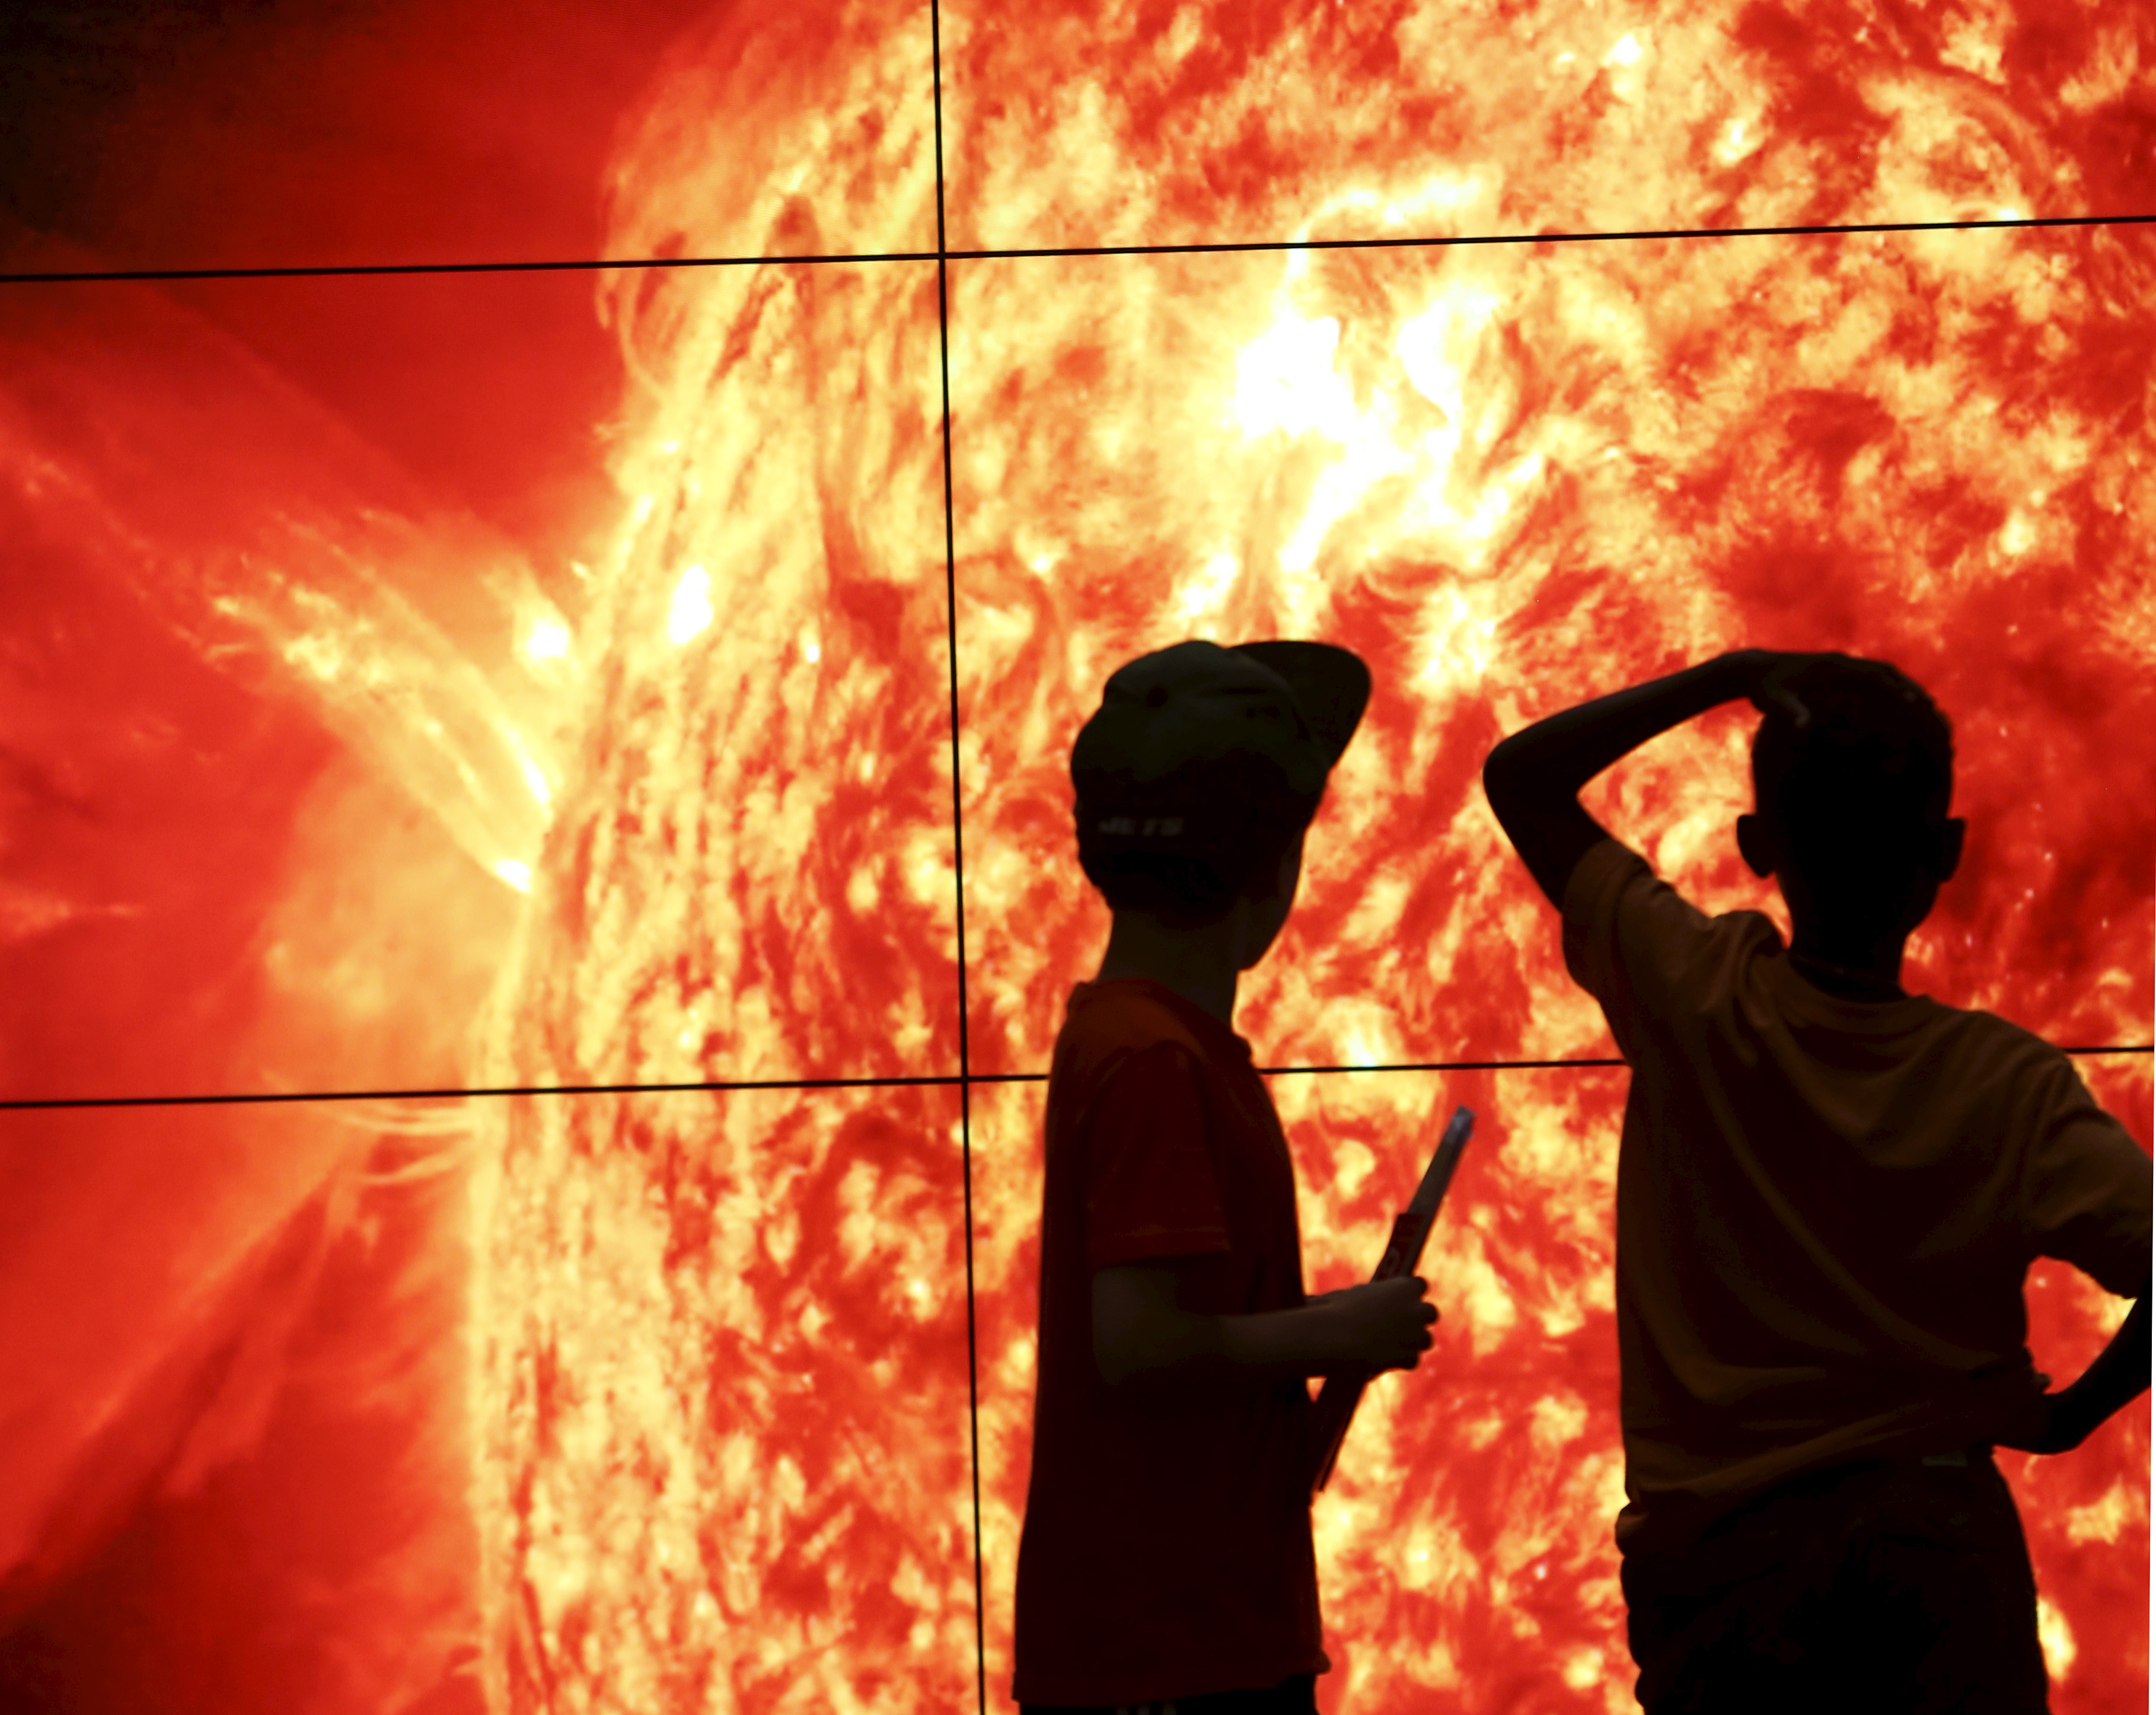 Two boys at the Smithsonian National Air and Space Museum look at images that are 48 hours old, coming back from the sun, in Washington, September 1, 2015. The sun's images, from NASA's Solar Dynamic Observatory, show four different wavelengths and deliver data on the sun's influence on earth. REUTERS/Gary Cameron